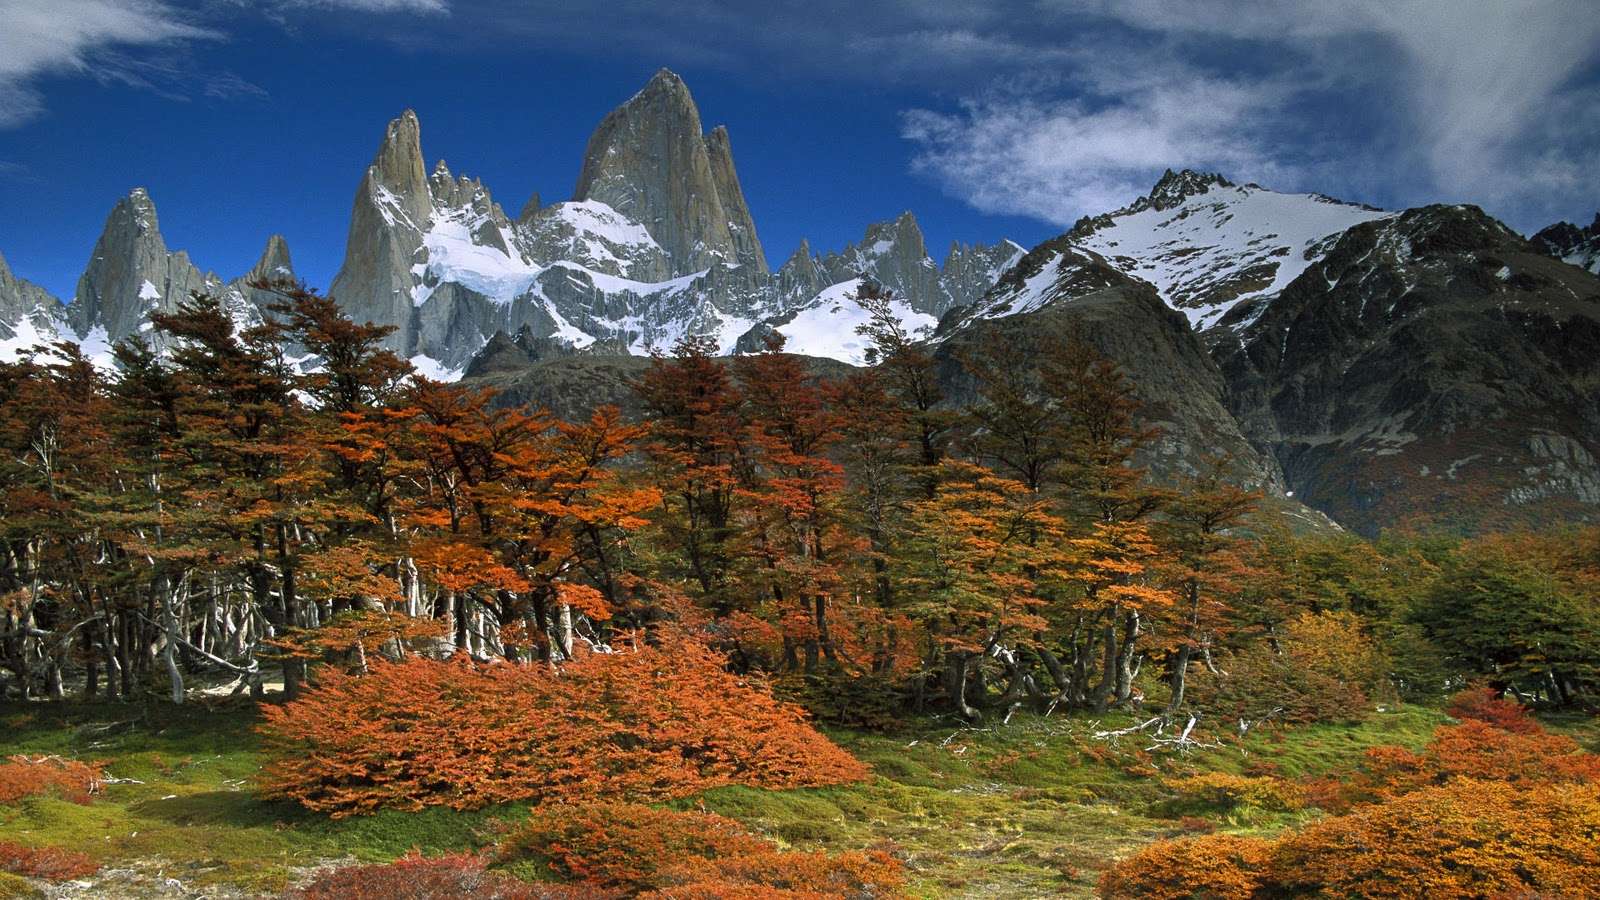 Argentina - Page 2 Mount%2520Fitzroy%2520and%2520Beech%2520Trees%2C%2520Los%2520Glaciares%2520National%2520Park%2C%2520Patagonia%2C%2520Argentina